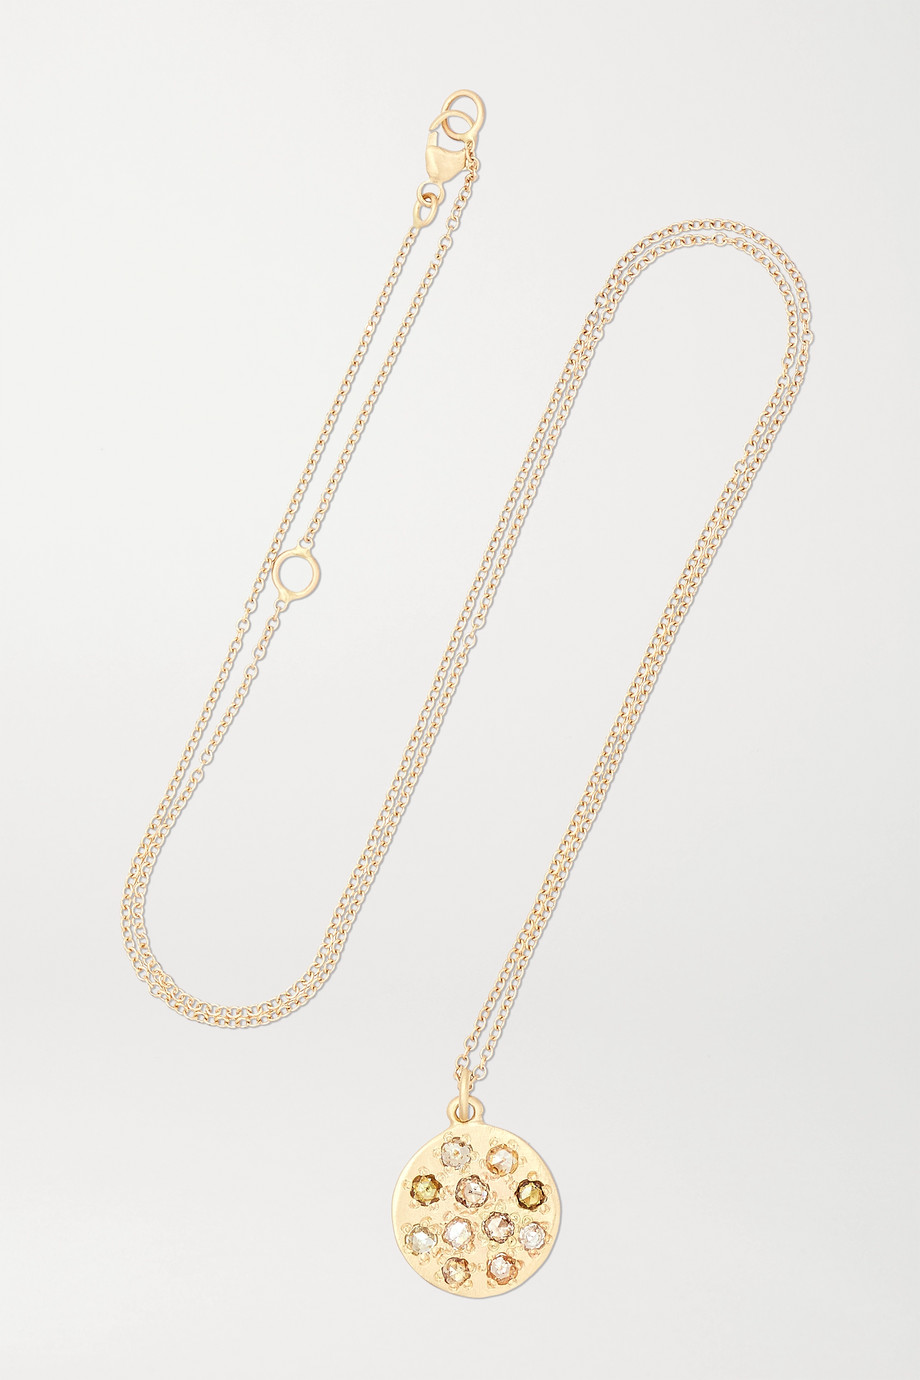 Brooke Gregson Mini Mars 14-karat gold diamond necklace